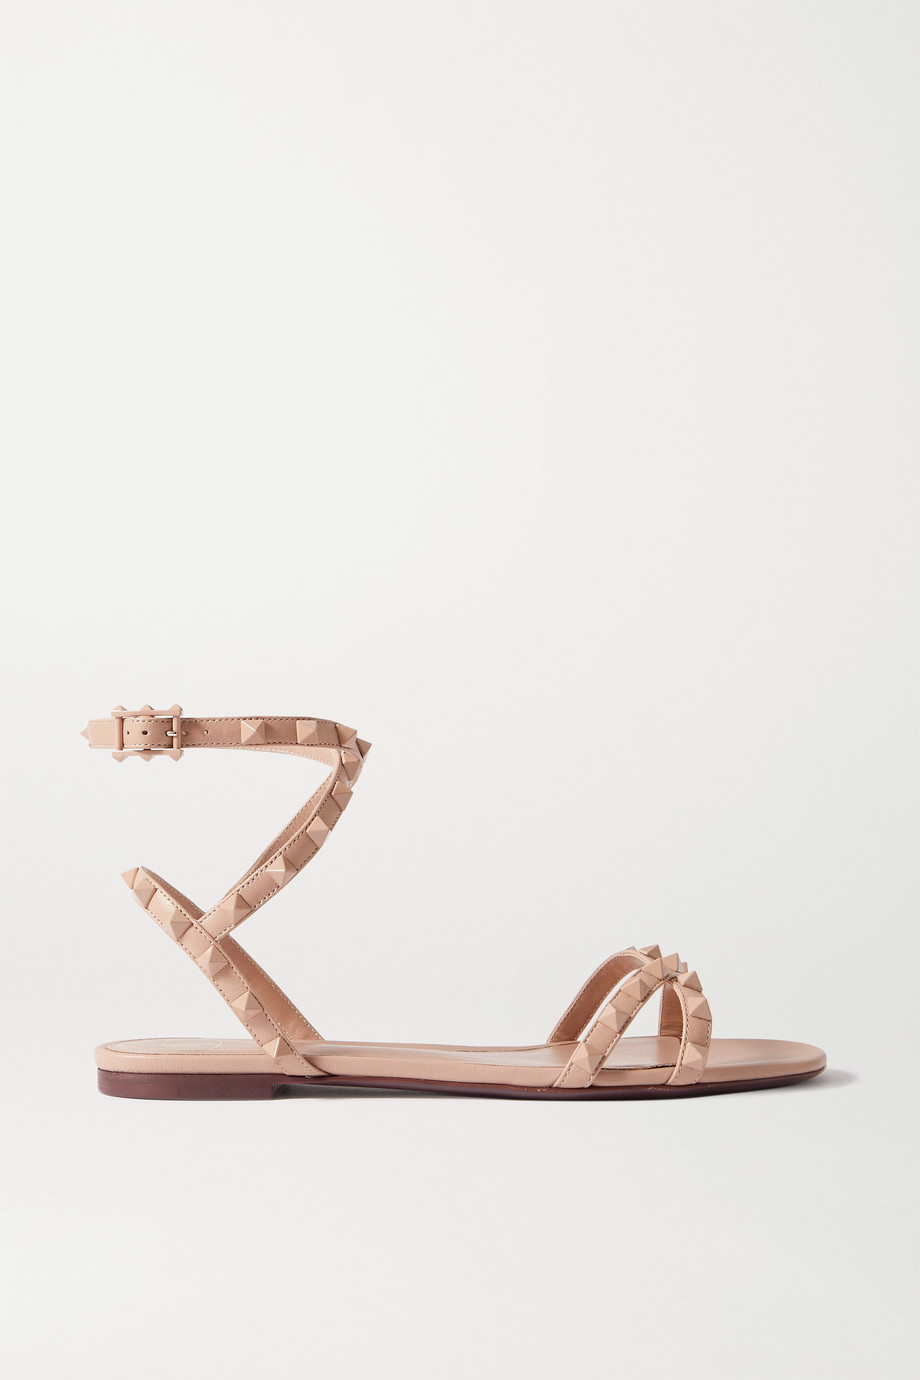 VALENTINO Valentino Garavani Rockstud Flair leather sandals